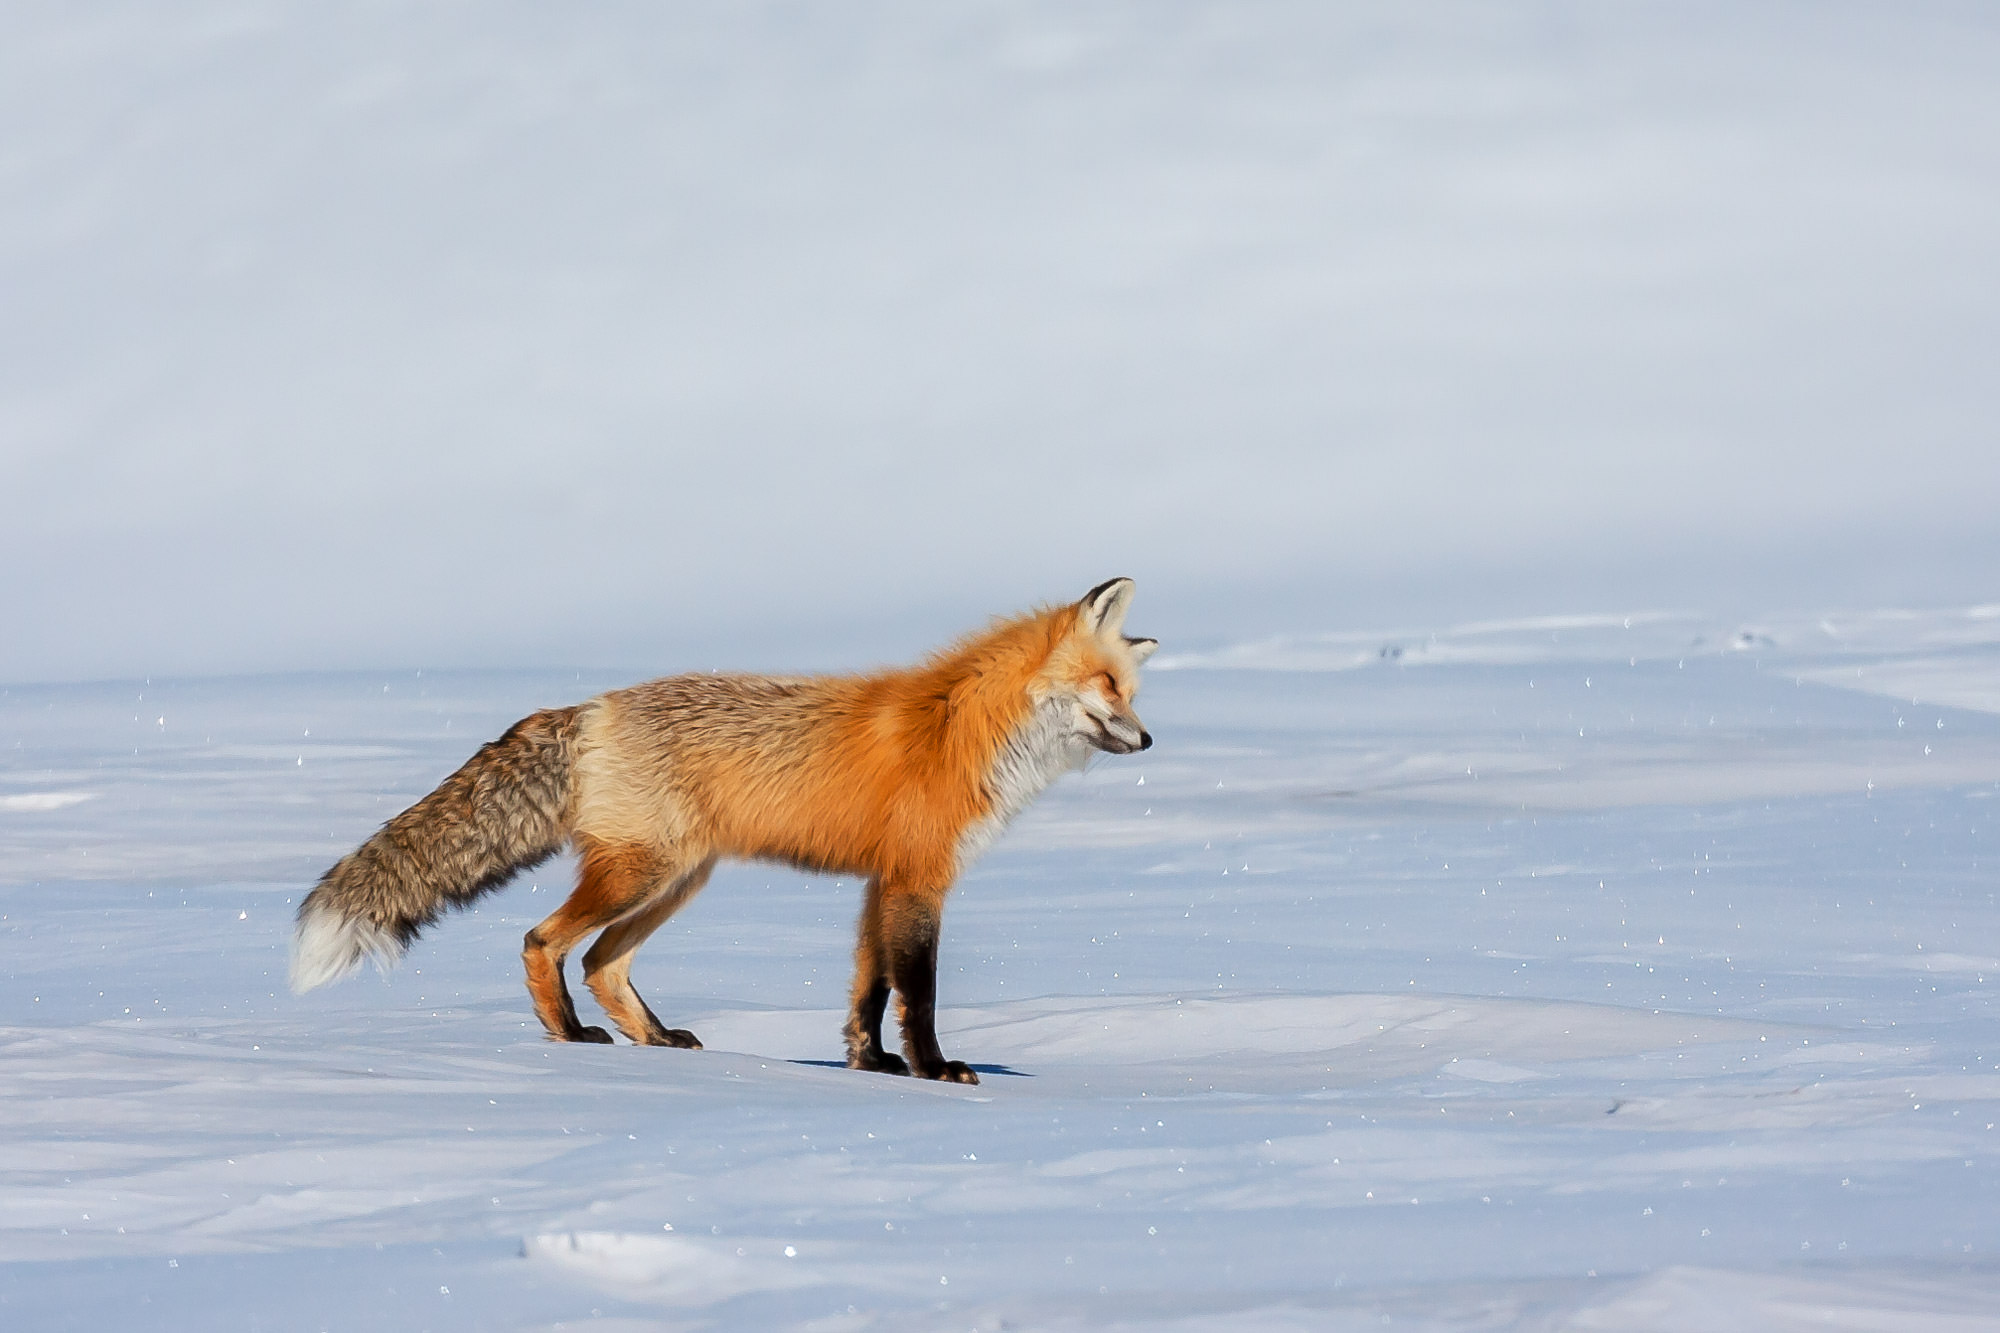 Fox, Red Fox, Winter, Yellowstone, Wyoming, limited edition, photograph, fine art, wildlife, photo